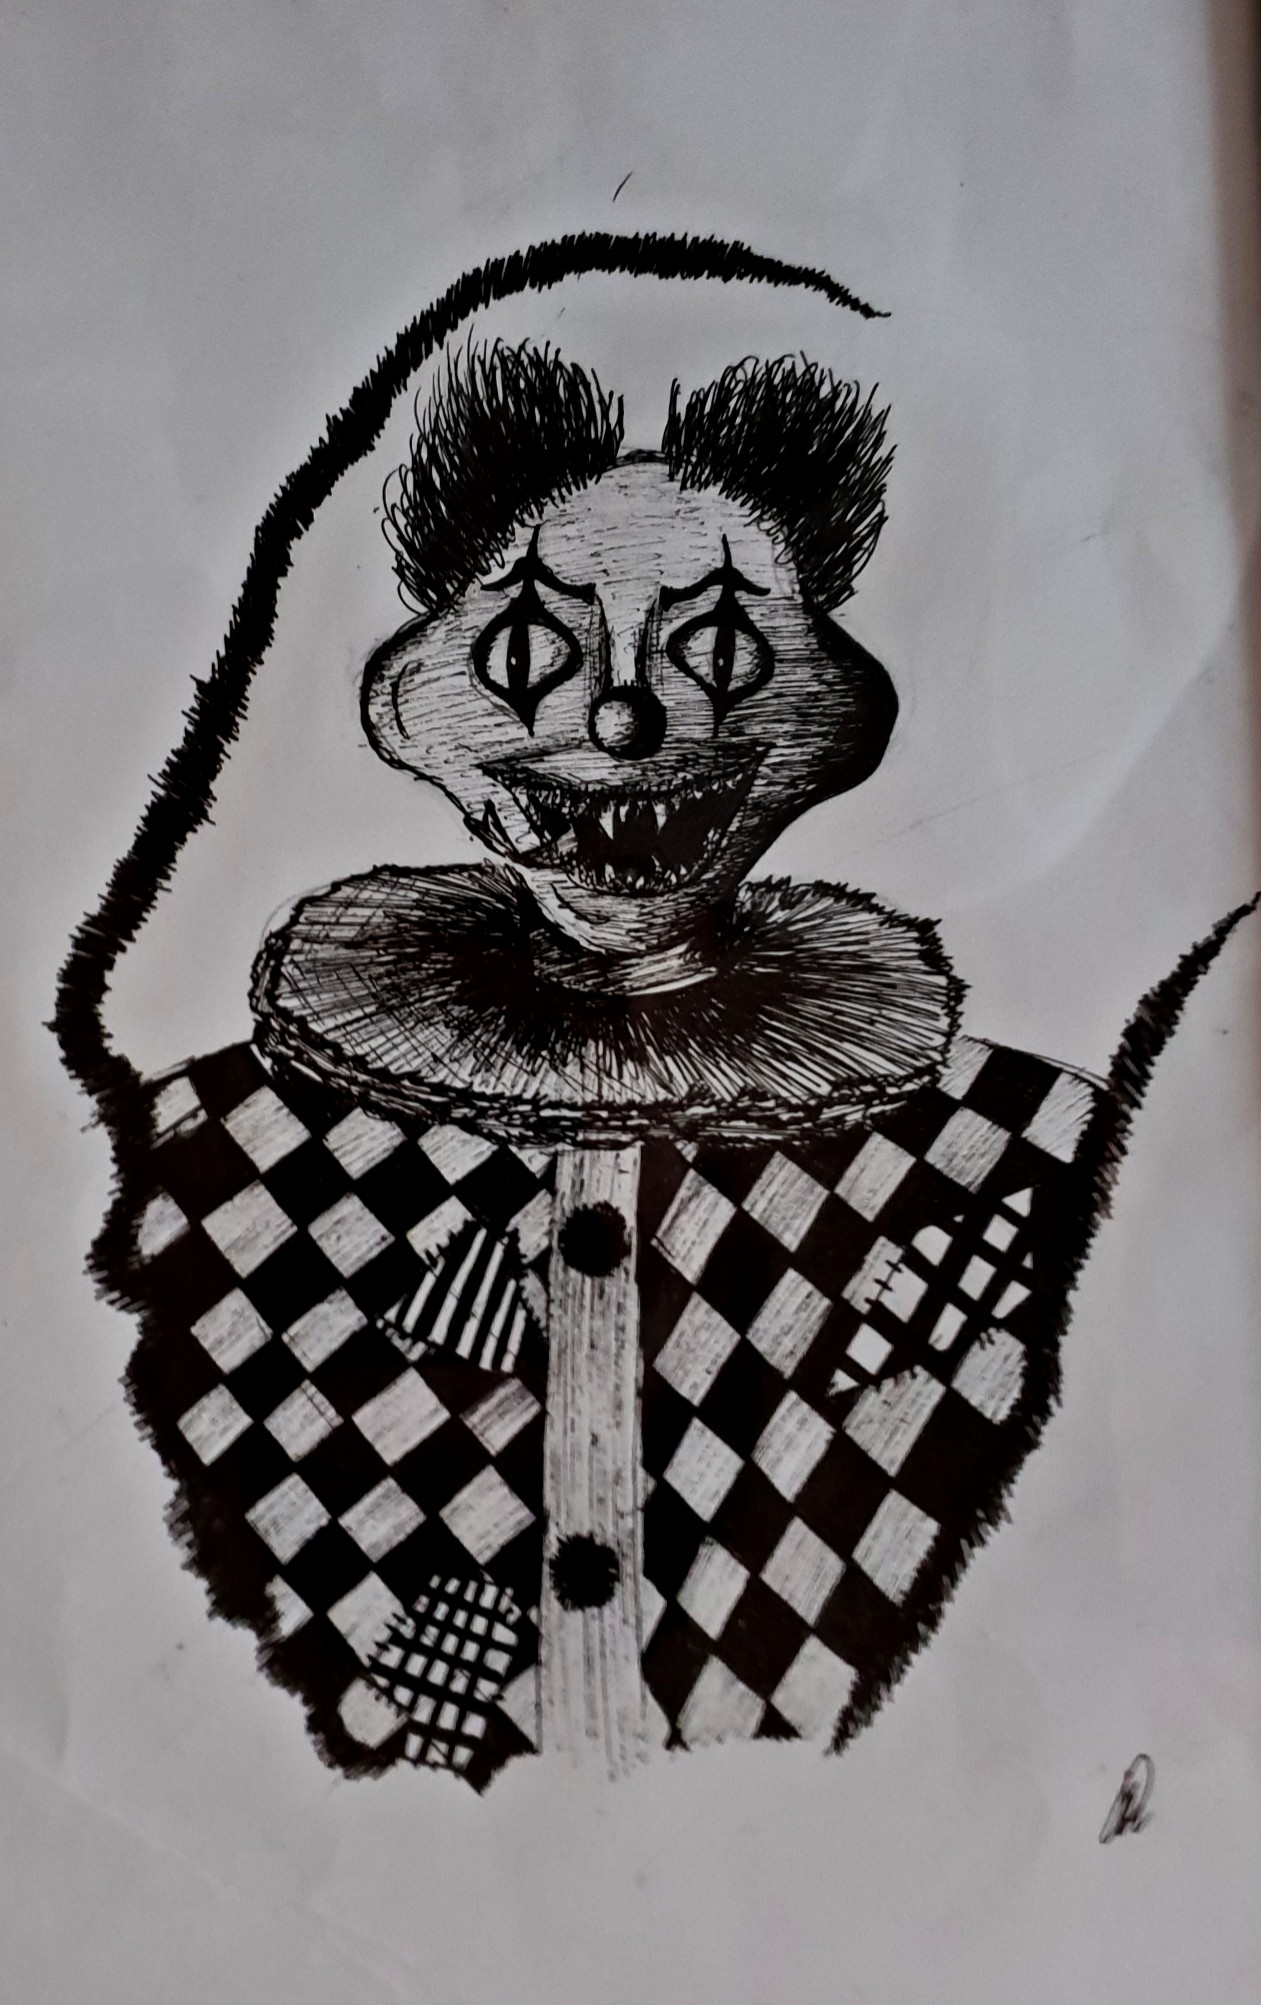 The clown came for you